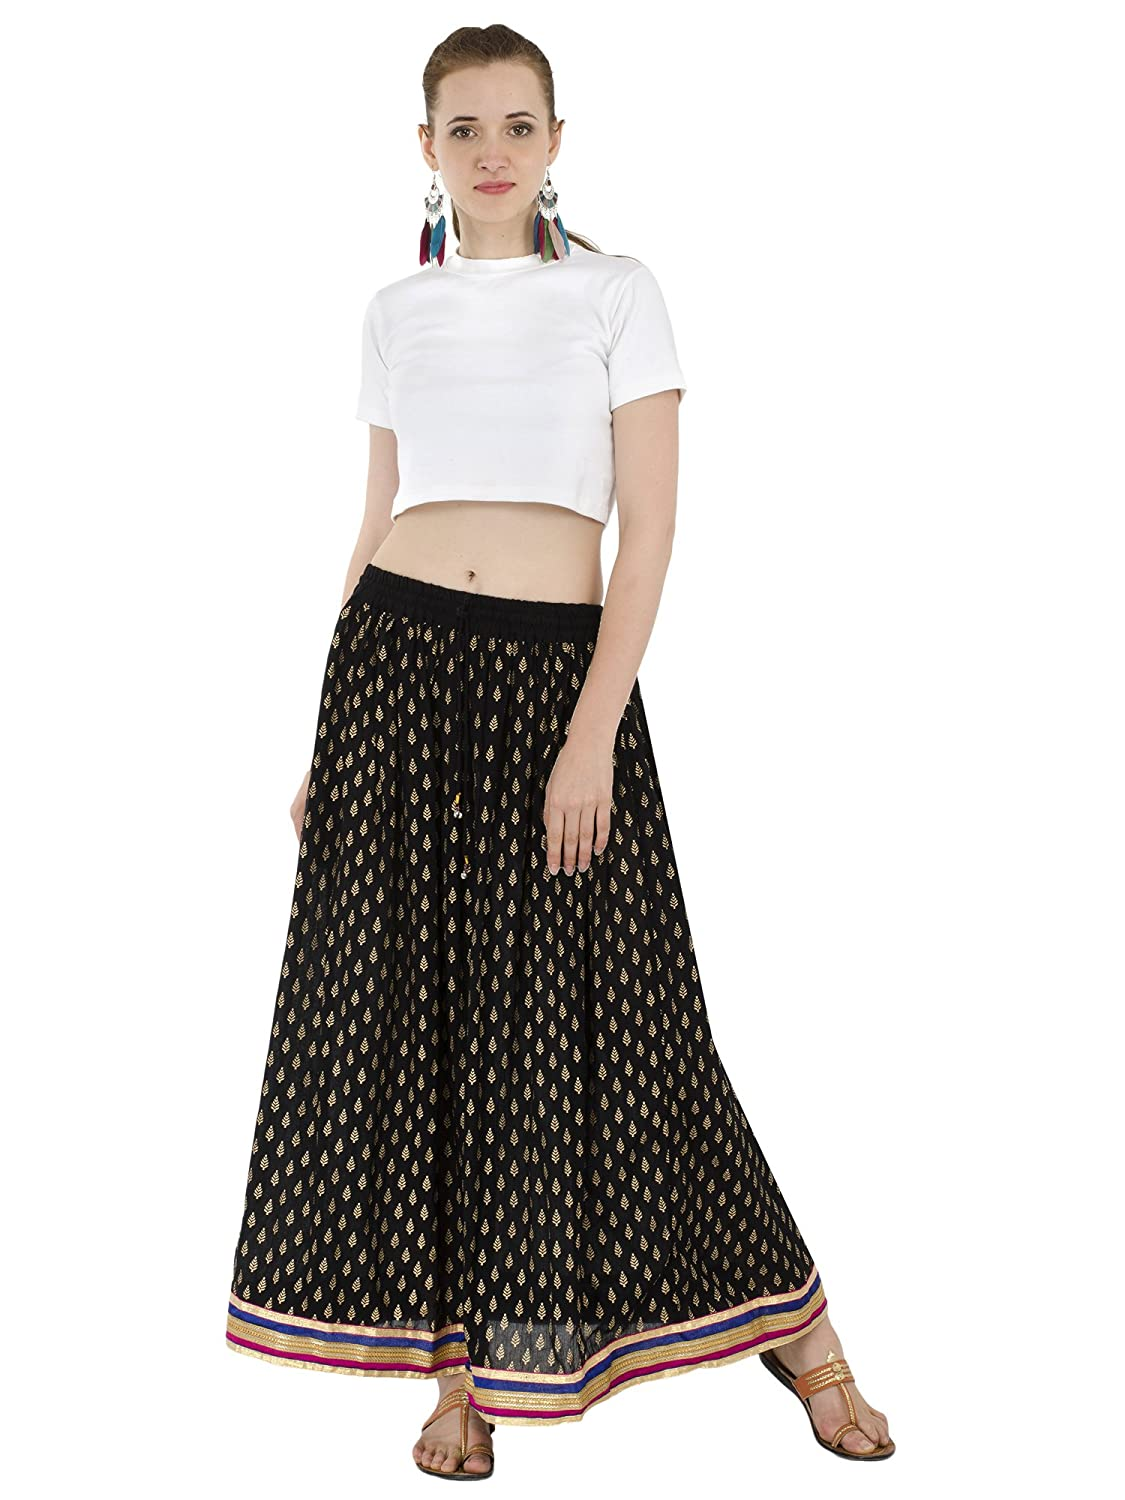 d98cccbdc5 Women's Full Length Elastic Waisted Maxi Floral Print Long Skirts for Gifts  at Amazon Women's Clothing store: